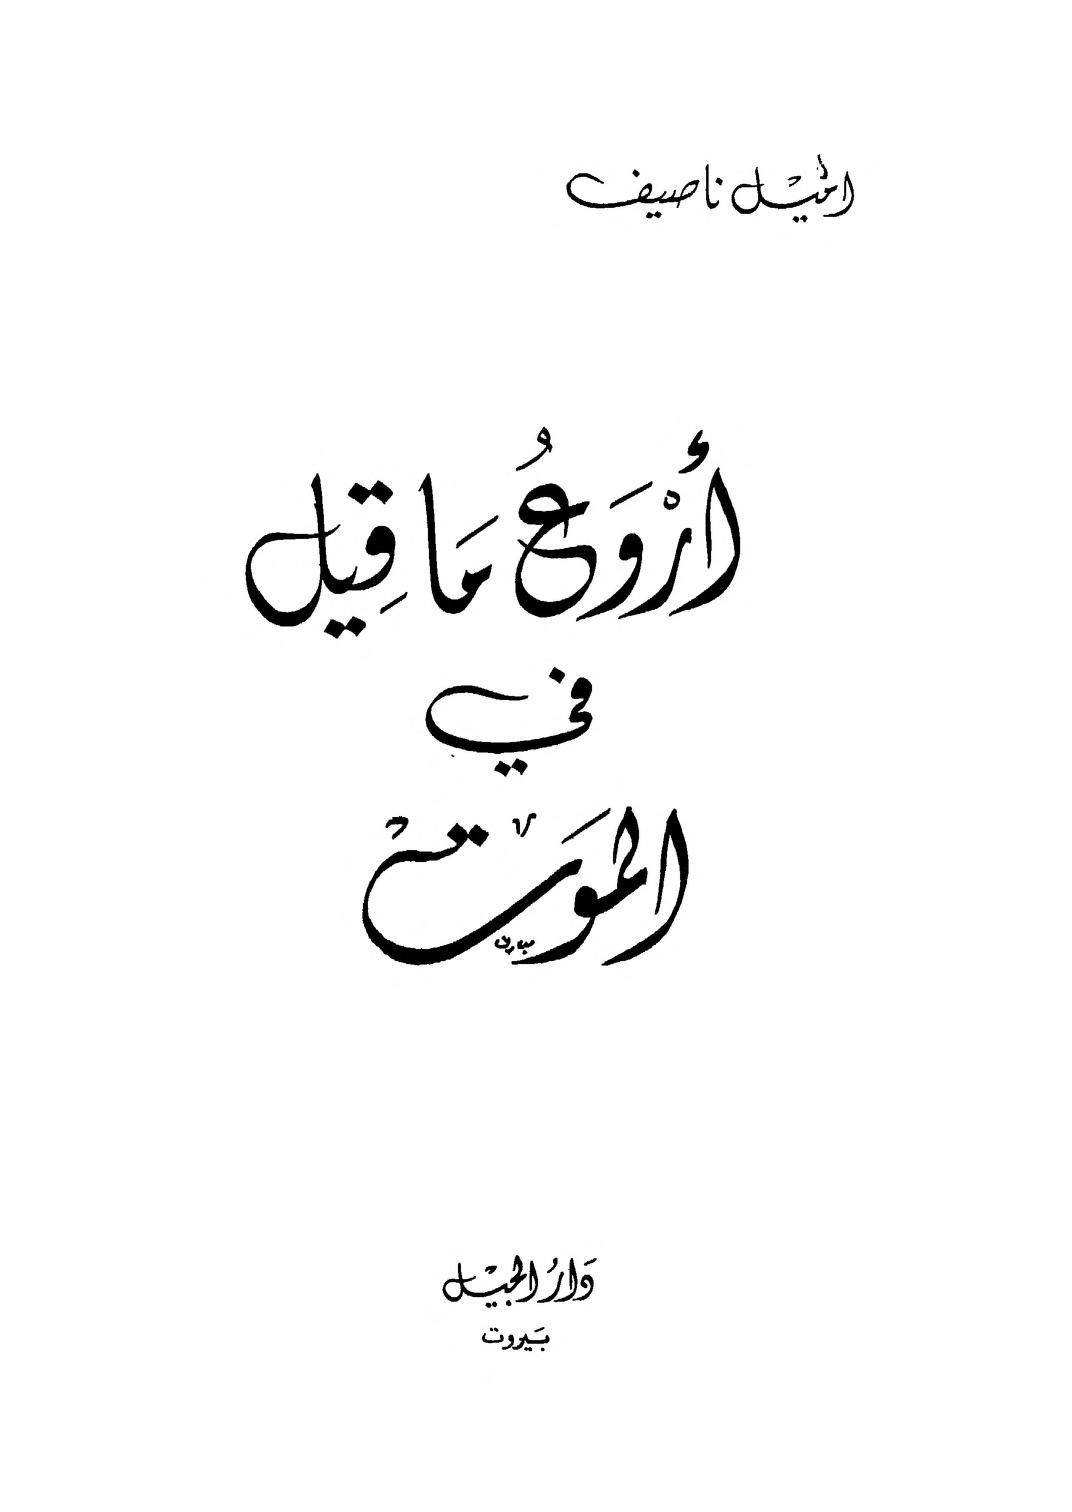 إميل ناصيف أروع ما قيل في الموت Free Download Borrow And Streaming Internet Archive Pdf Books Reading Arabic Books Ebooks Free Books